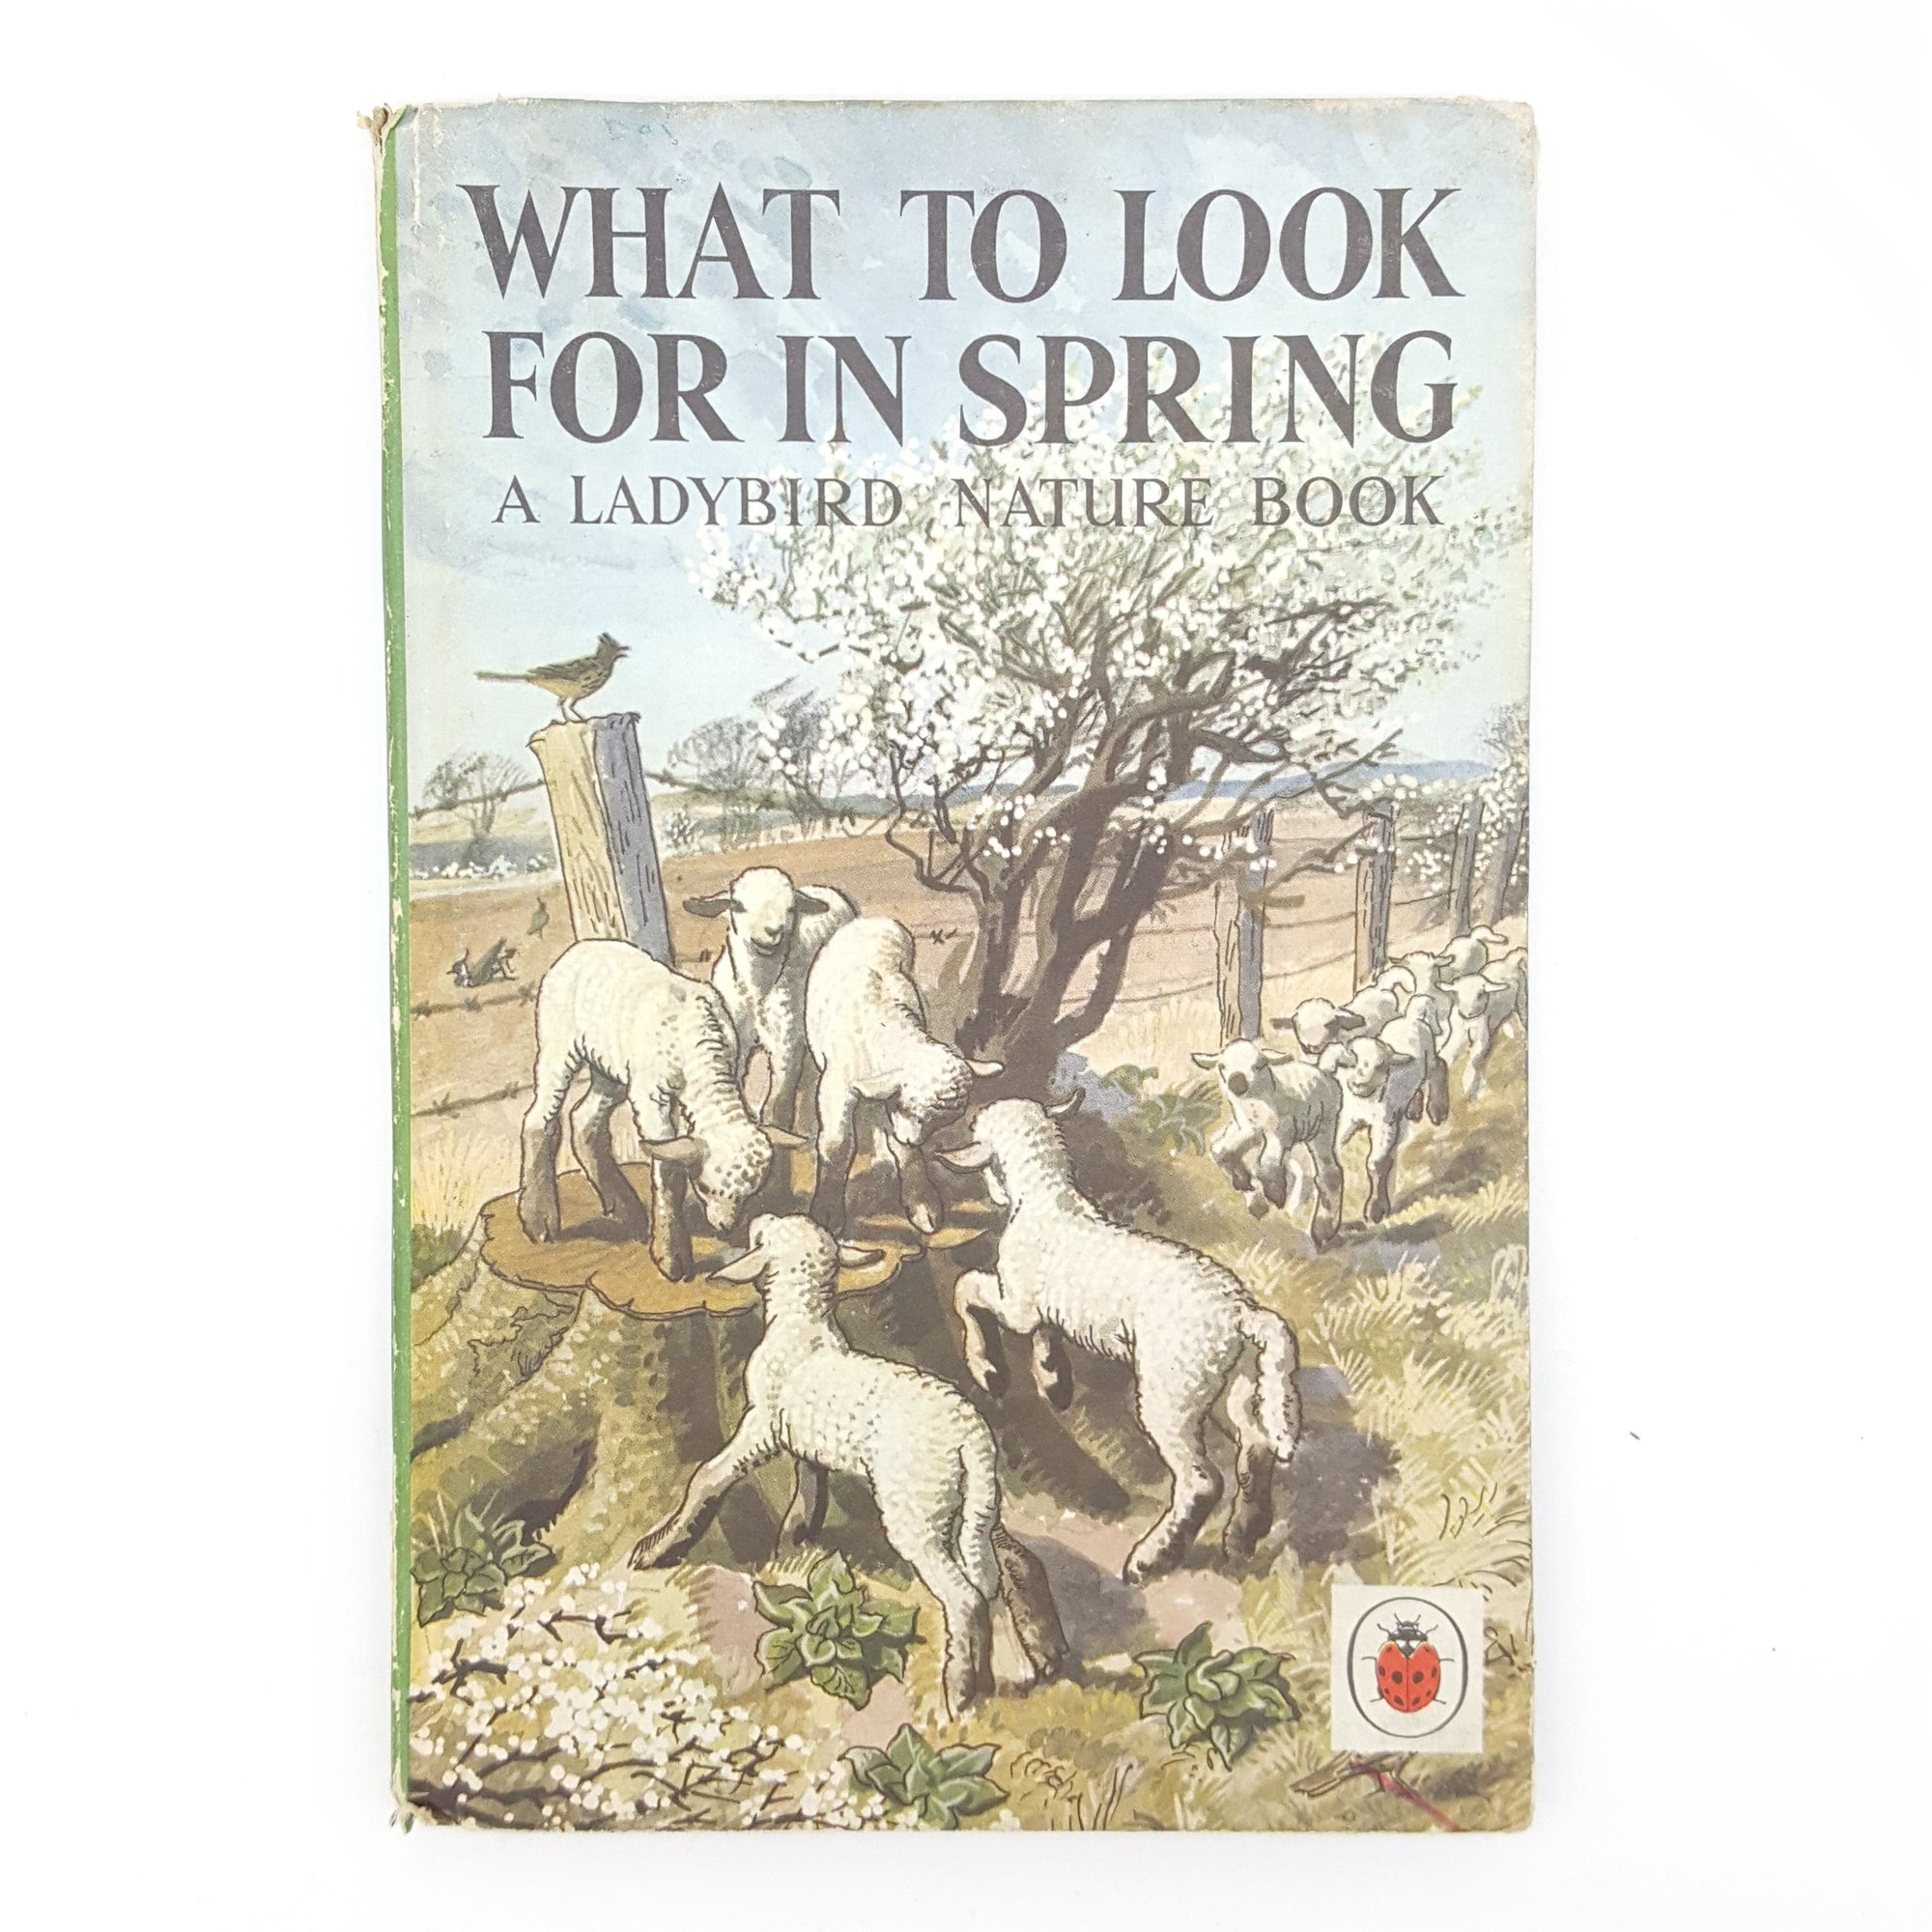 What To Look For In Spring 1961 Country House Library